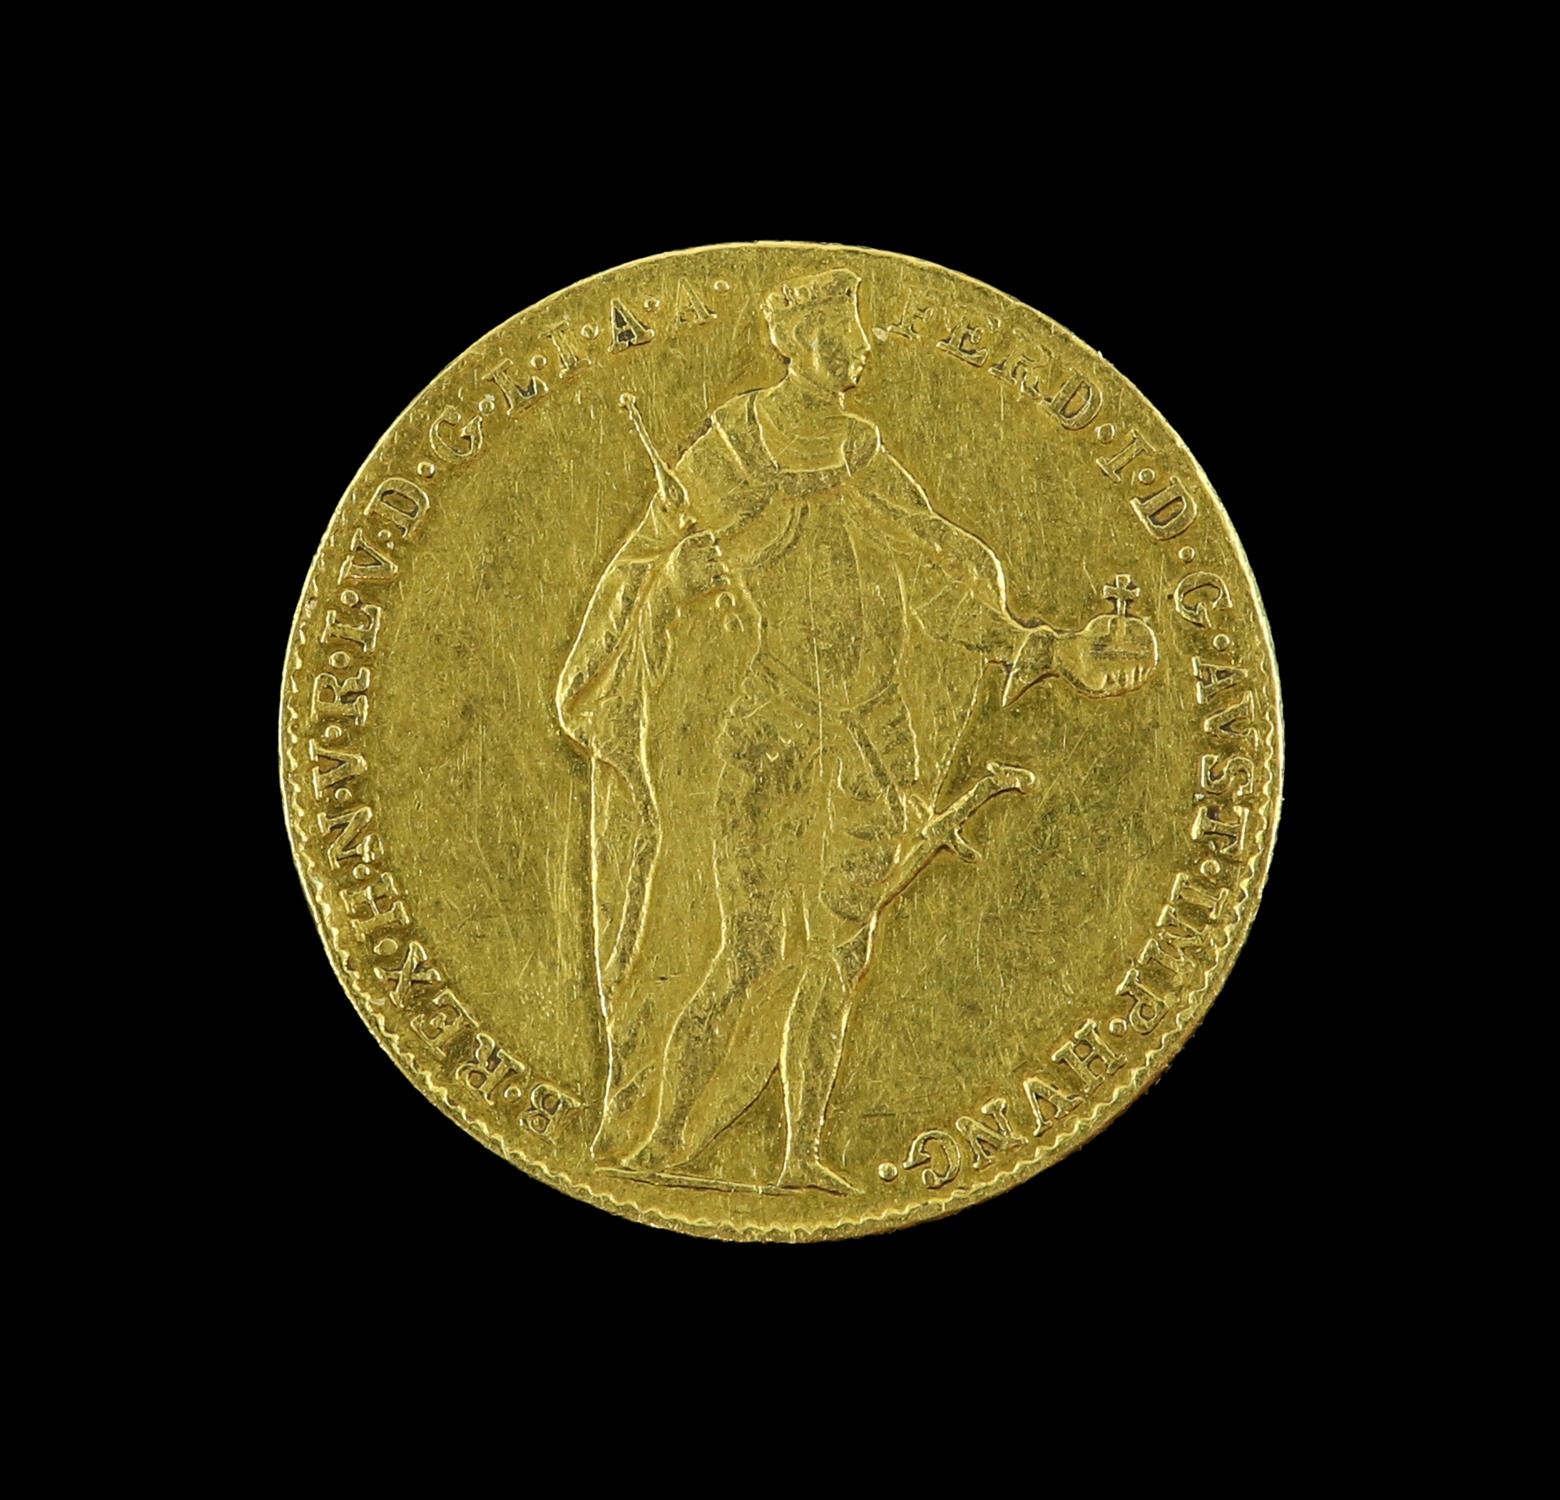 Hungary, Ferdinand V, gold Ducat 1848, Emperor standing, rev. Madonna and child - Image 2 of 2